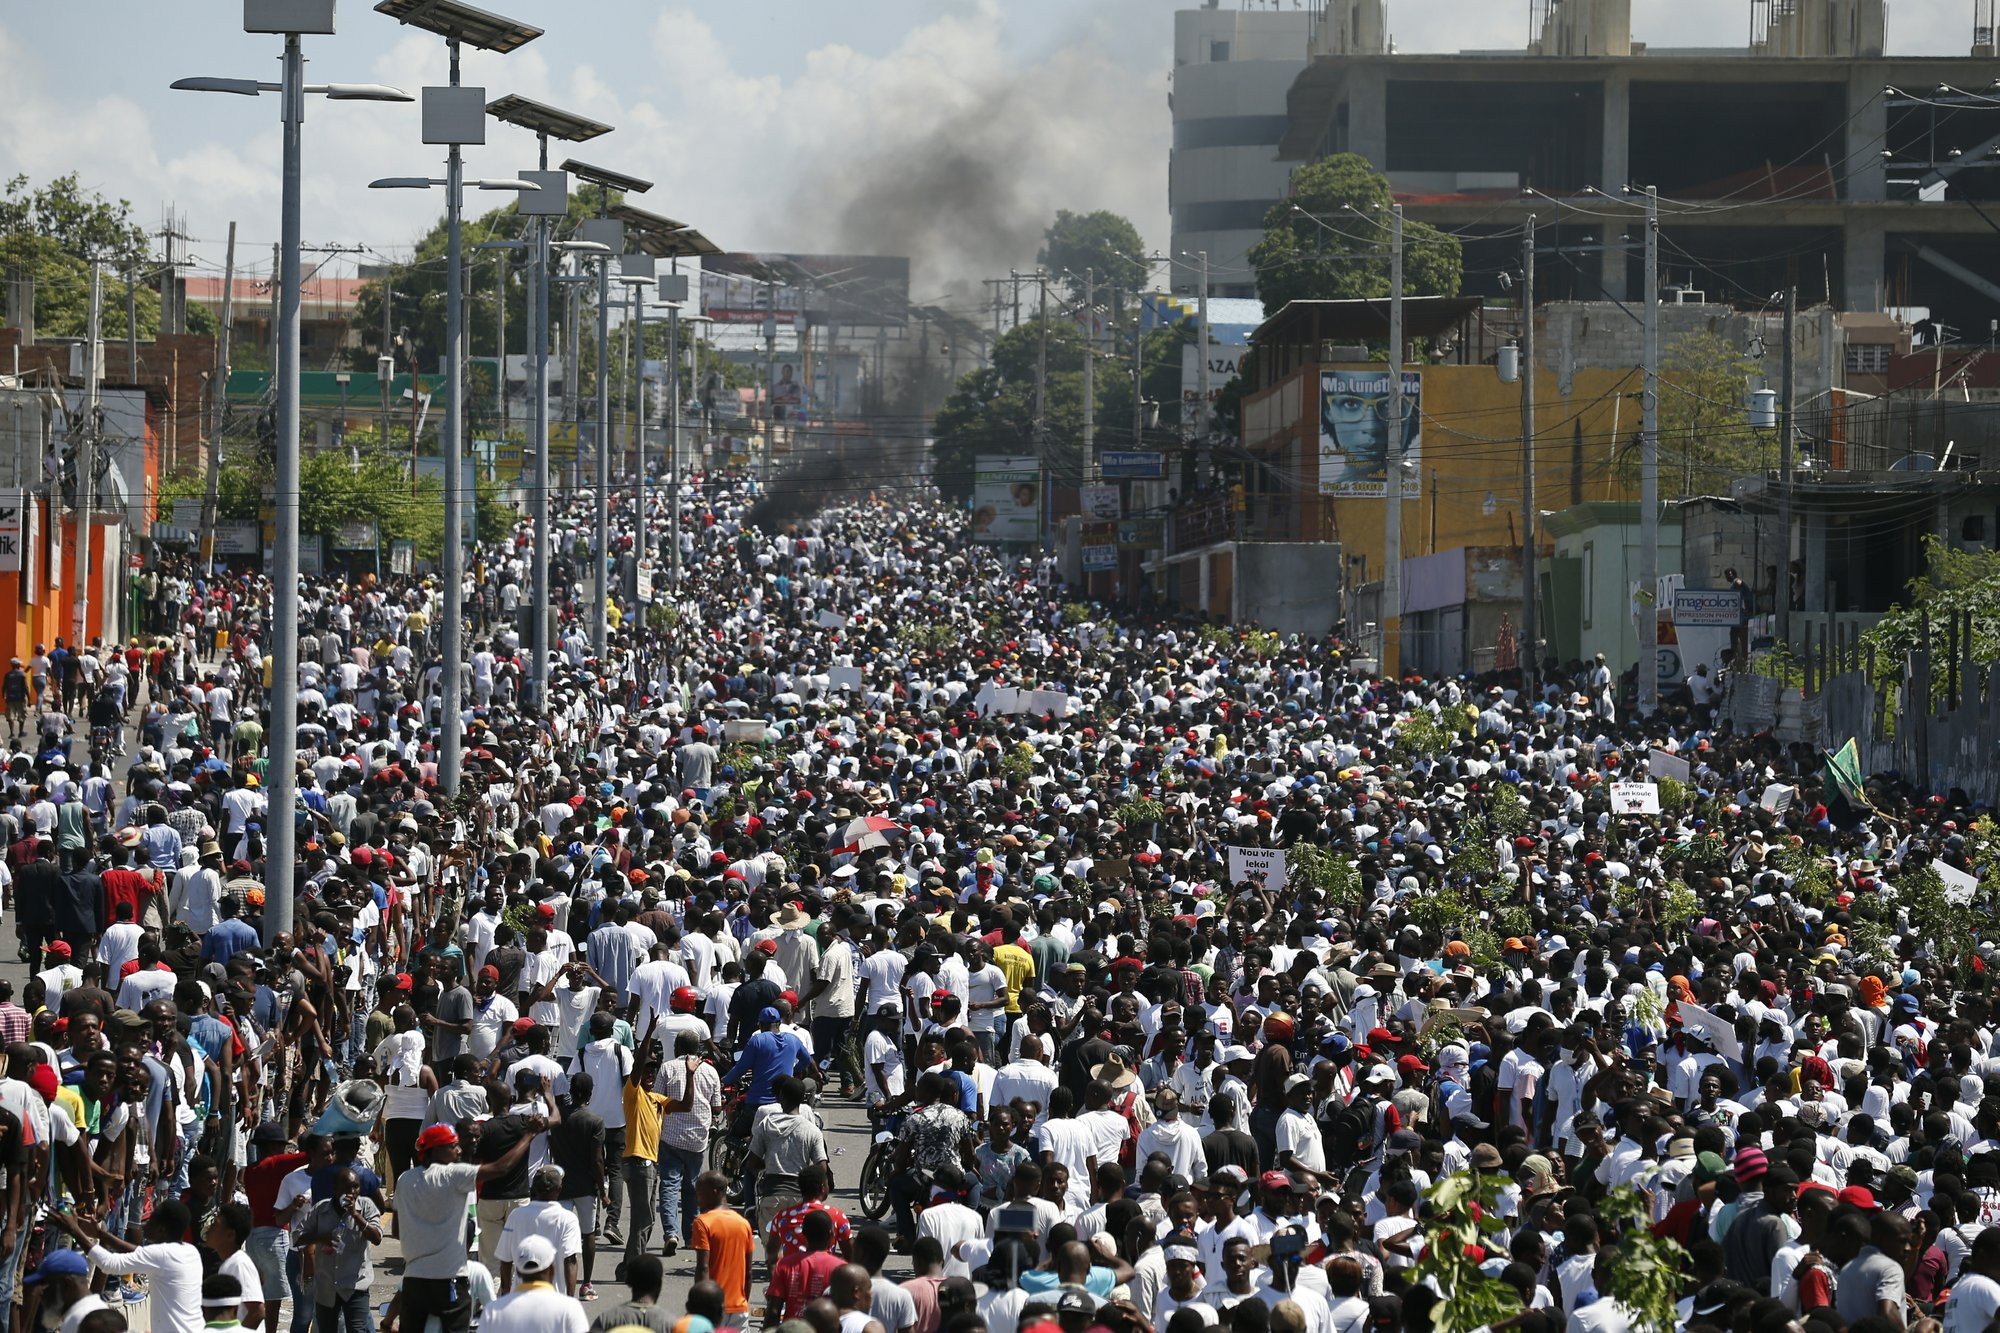 Thousands join protest called by Haiti's art community